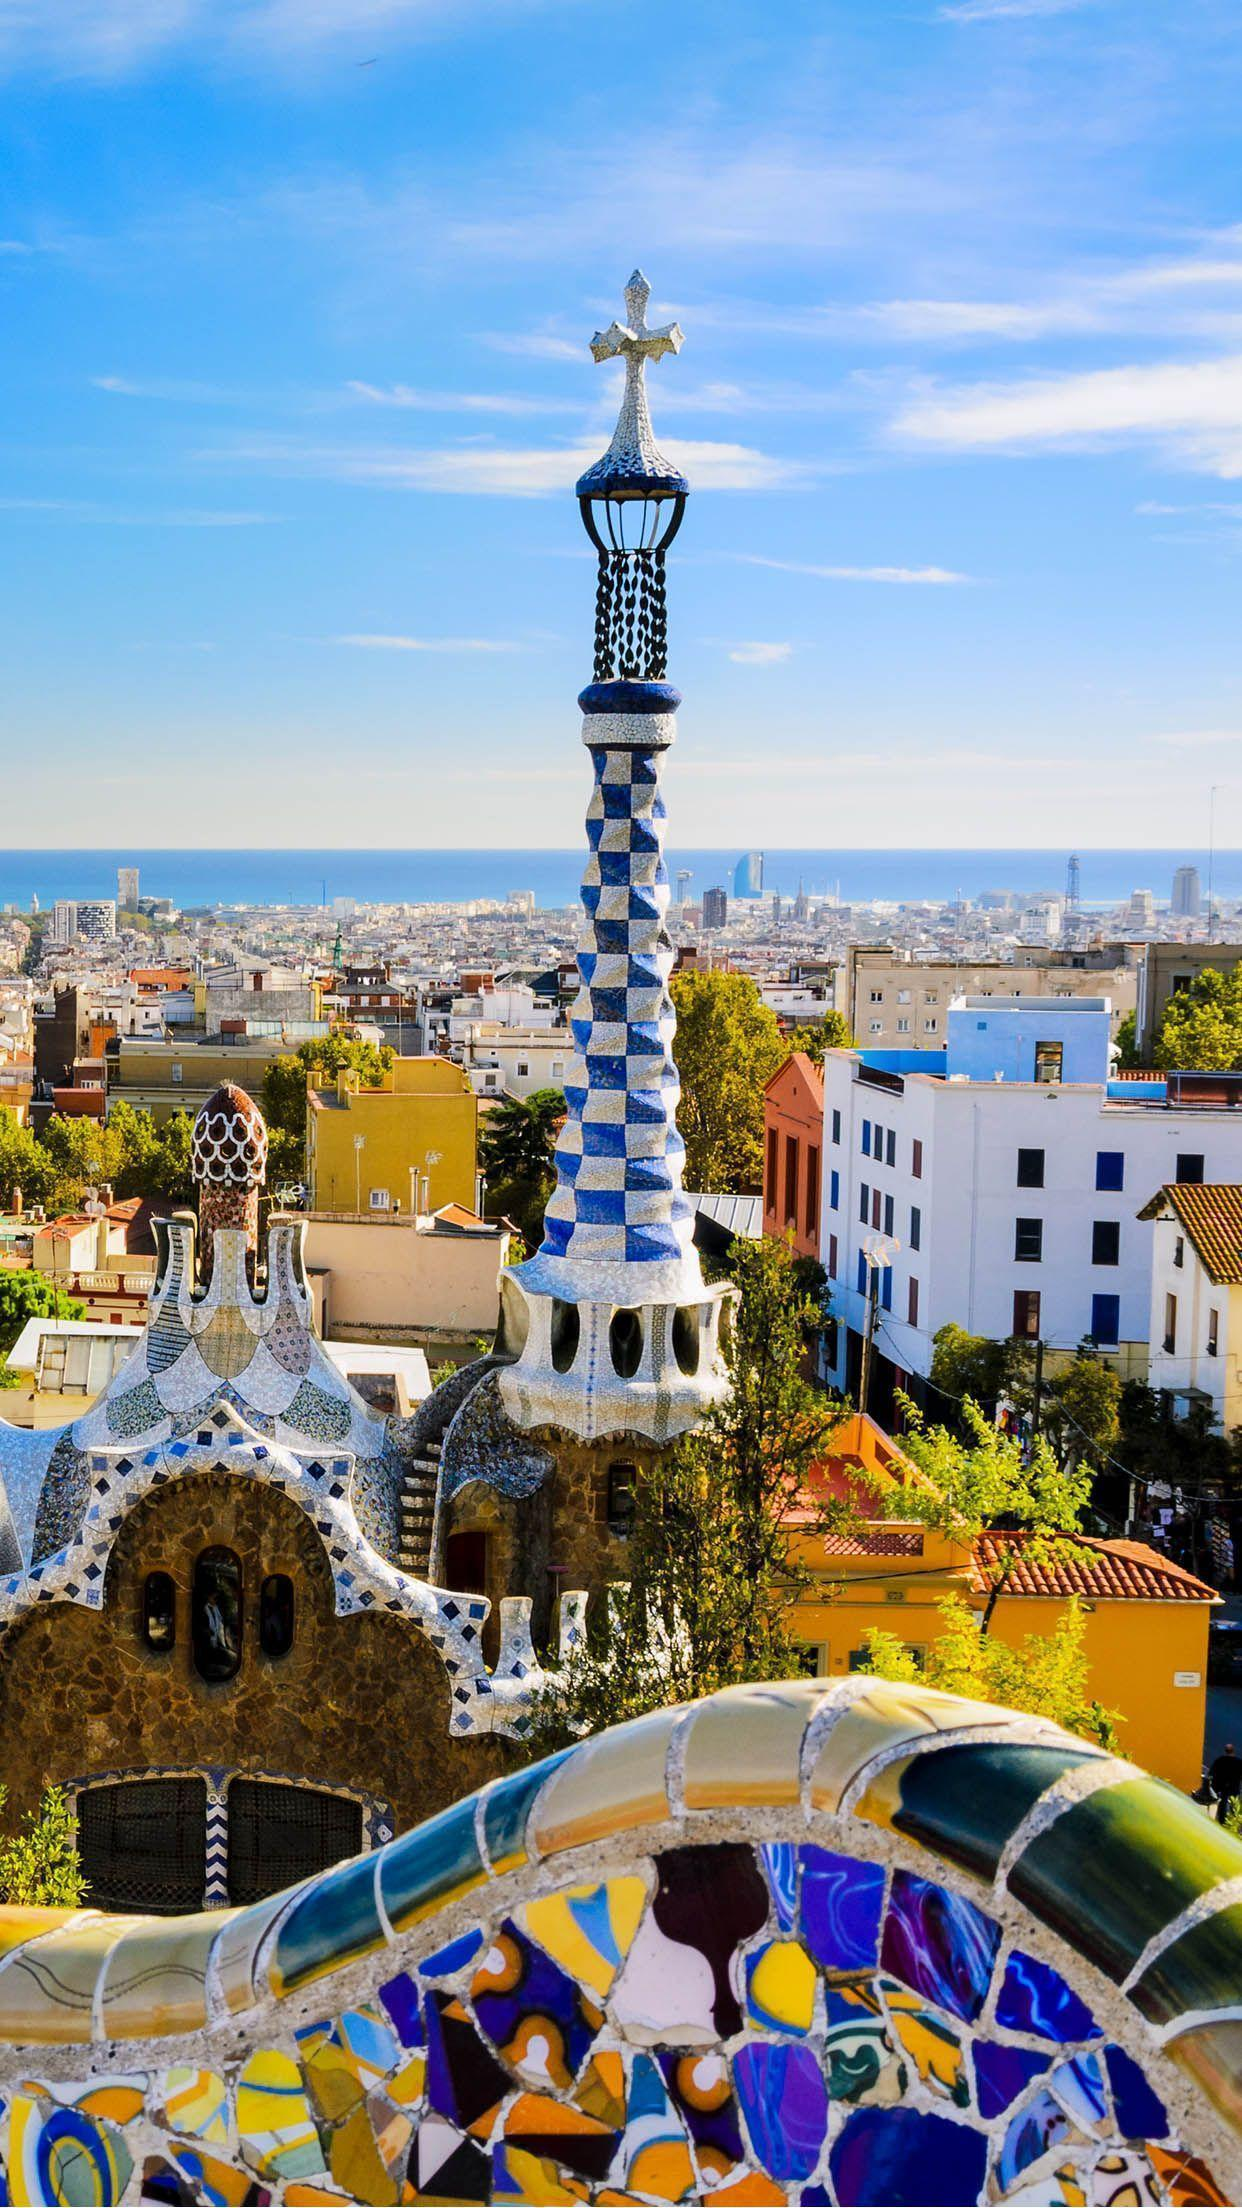 Barcelona beautiful city iphone 6plus hd wallpapers free | iPhone ...